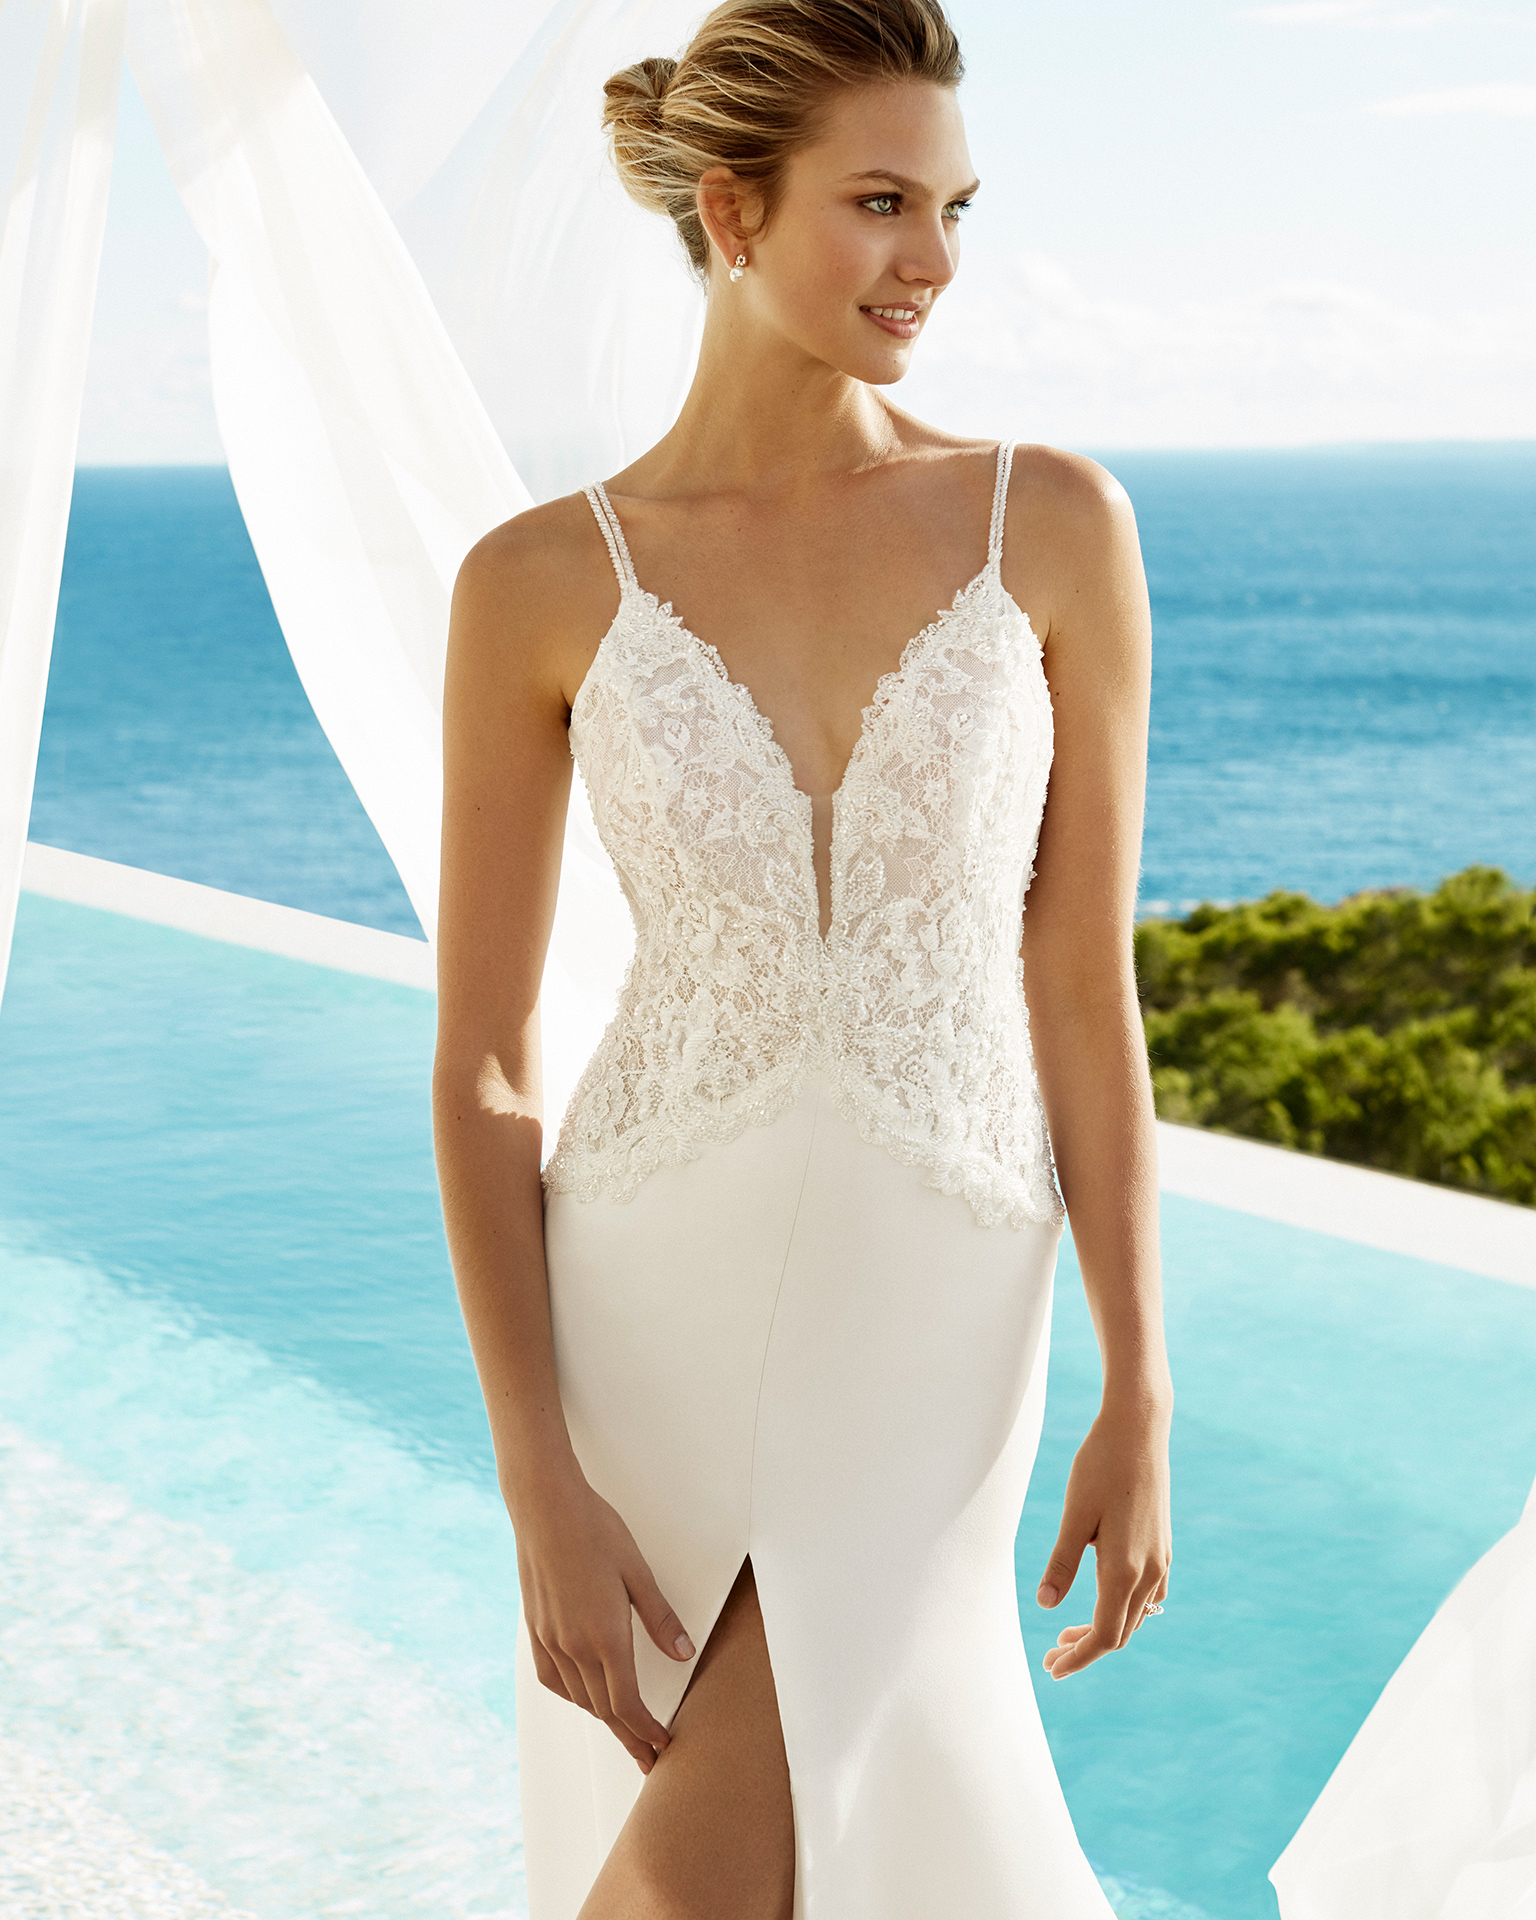 Sheath-style wedding dress in crepe and beaded lace. Deep-plunge neckline and front slit. Available in natural. 2019 AIRE BEACH WEDDING Collection.